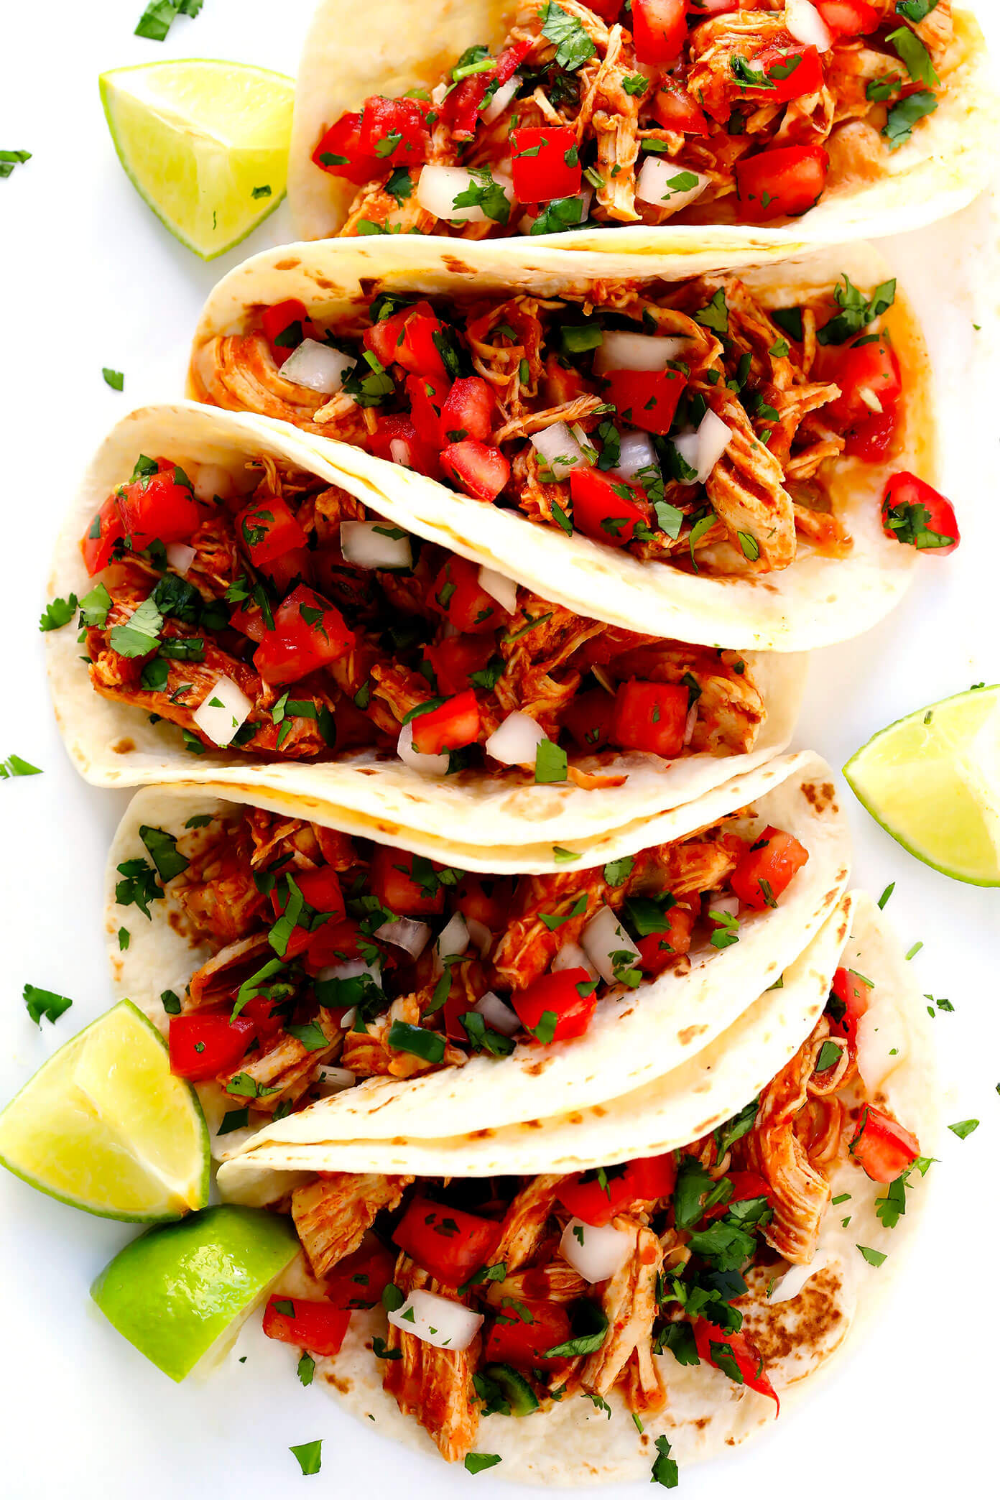 3-Ingredient Mexican Shredded Chicken #mexicanchickentacos